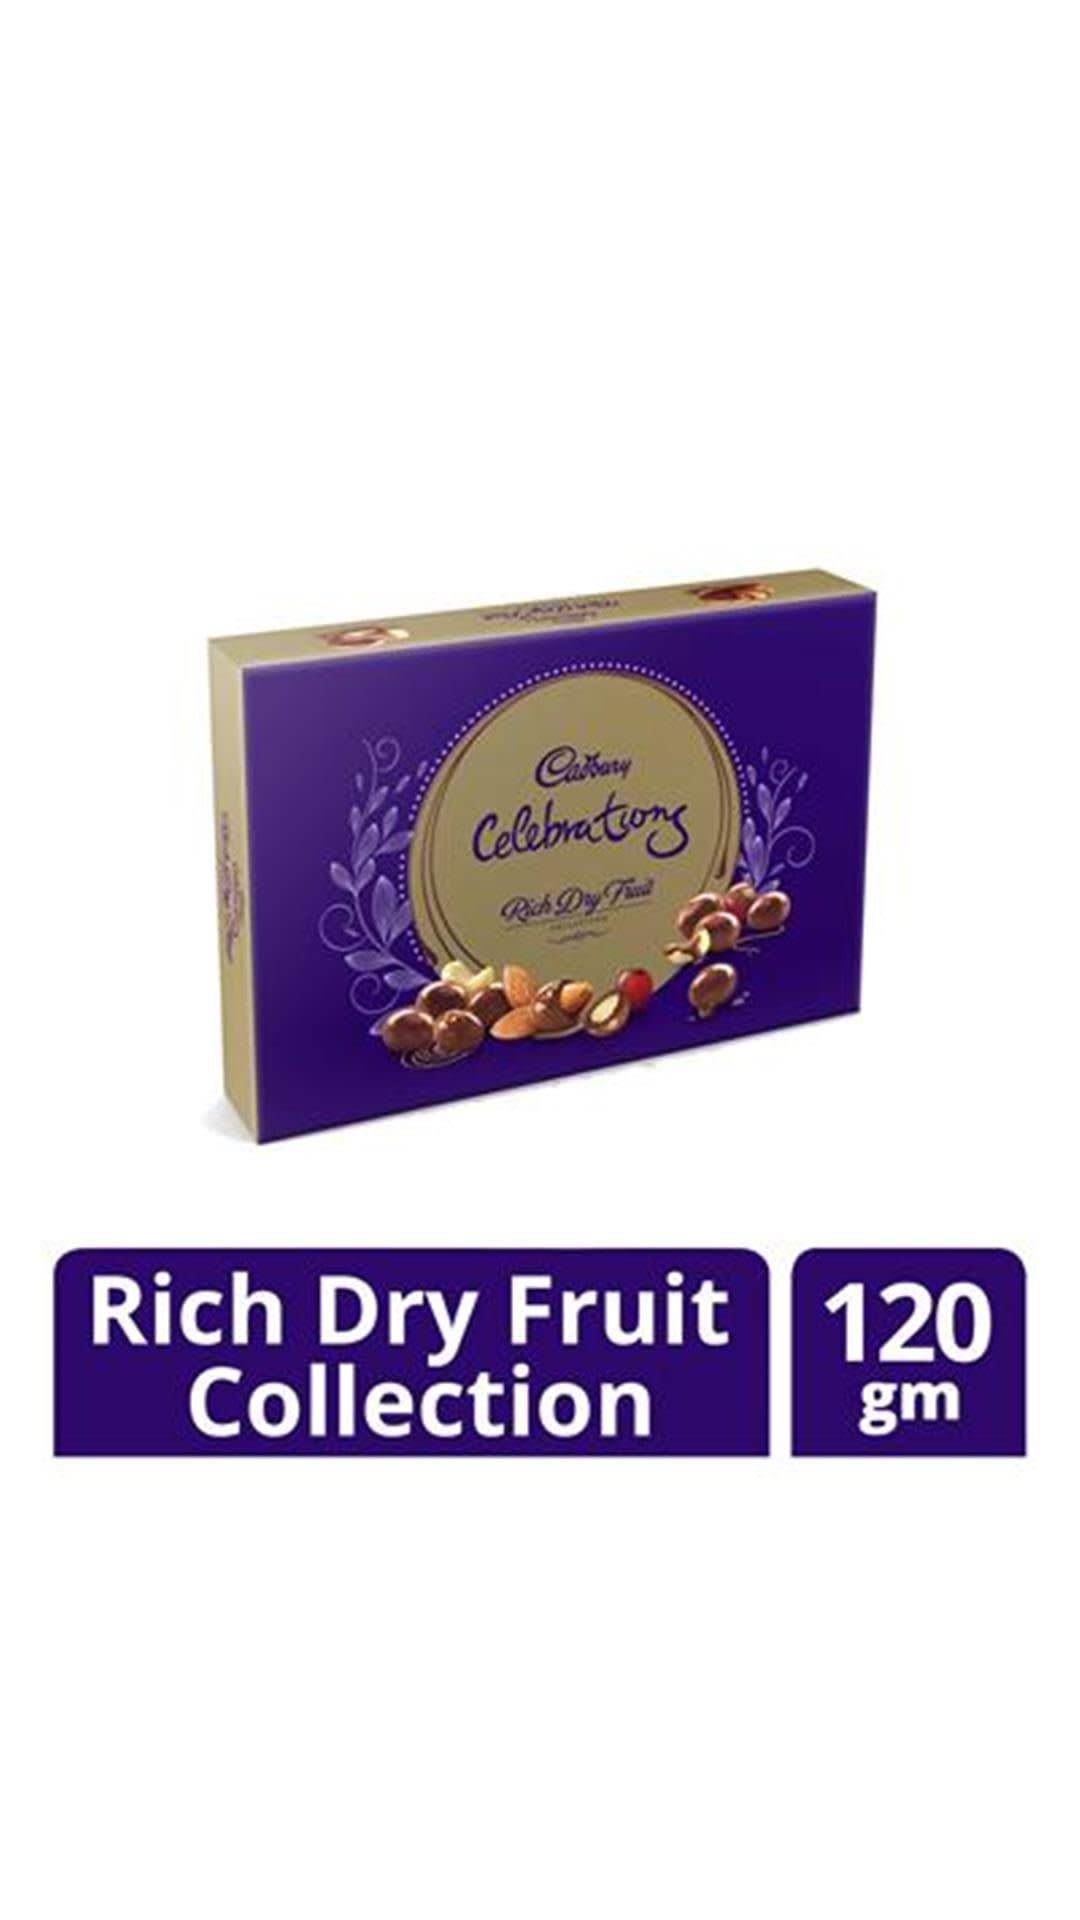 Cadbury Rich Dry Fruit Collection , 120g (pack of 2)